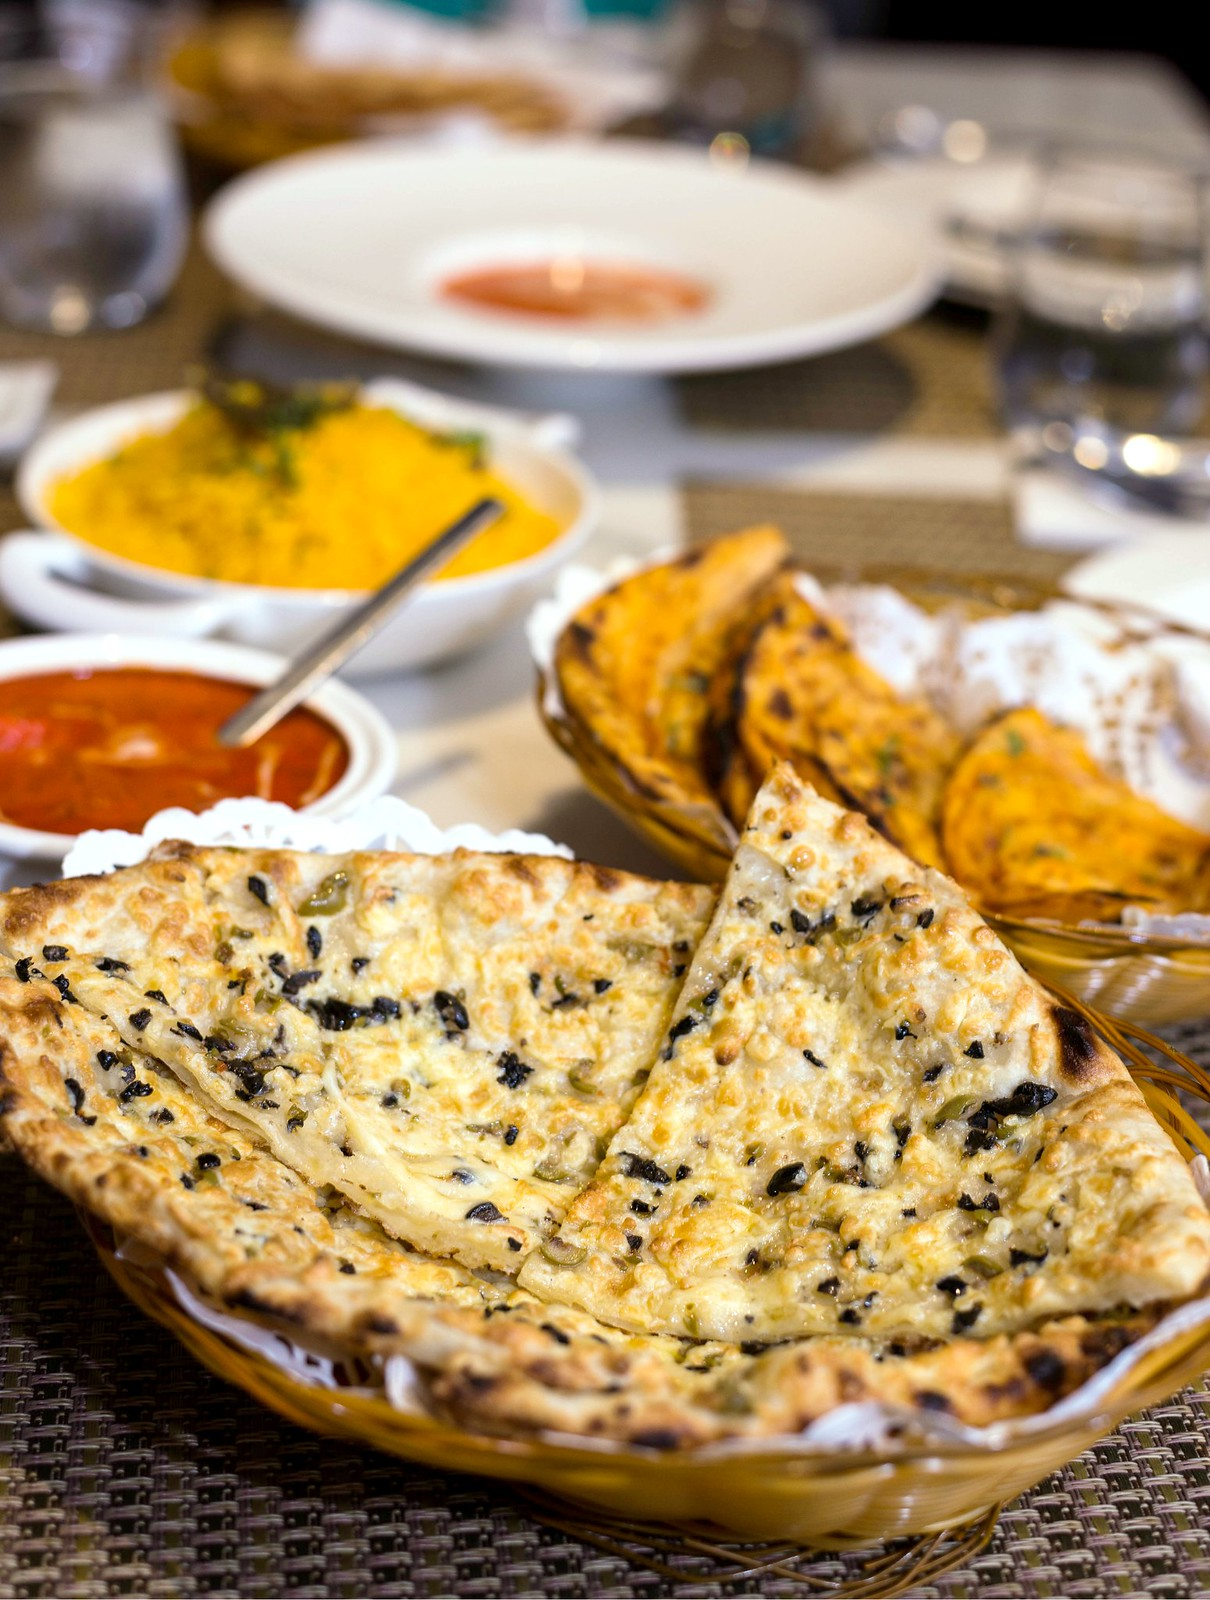 Quayside_isle_Earl_Of_Hindh_Olive_Chilli_Cheese_Bread